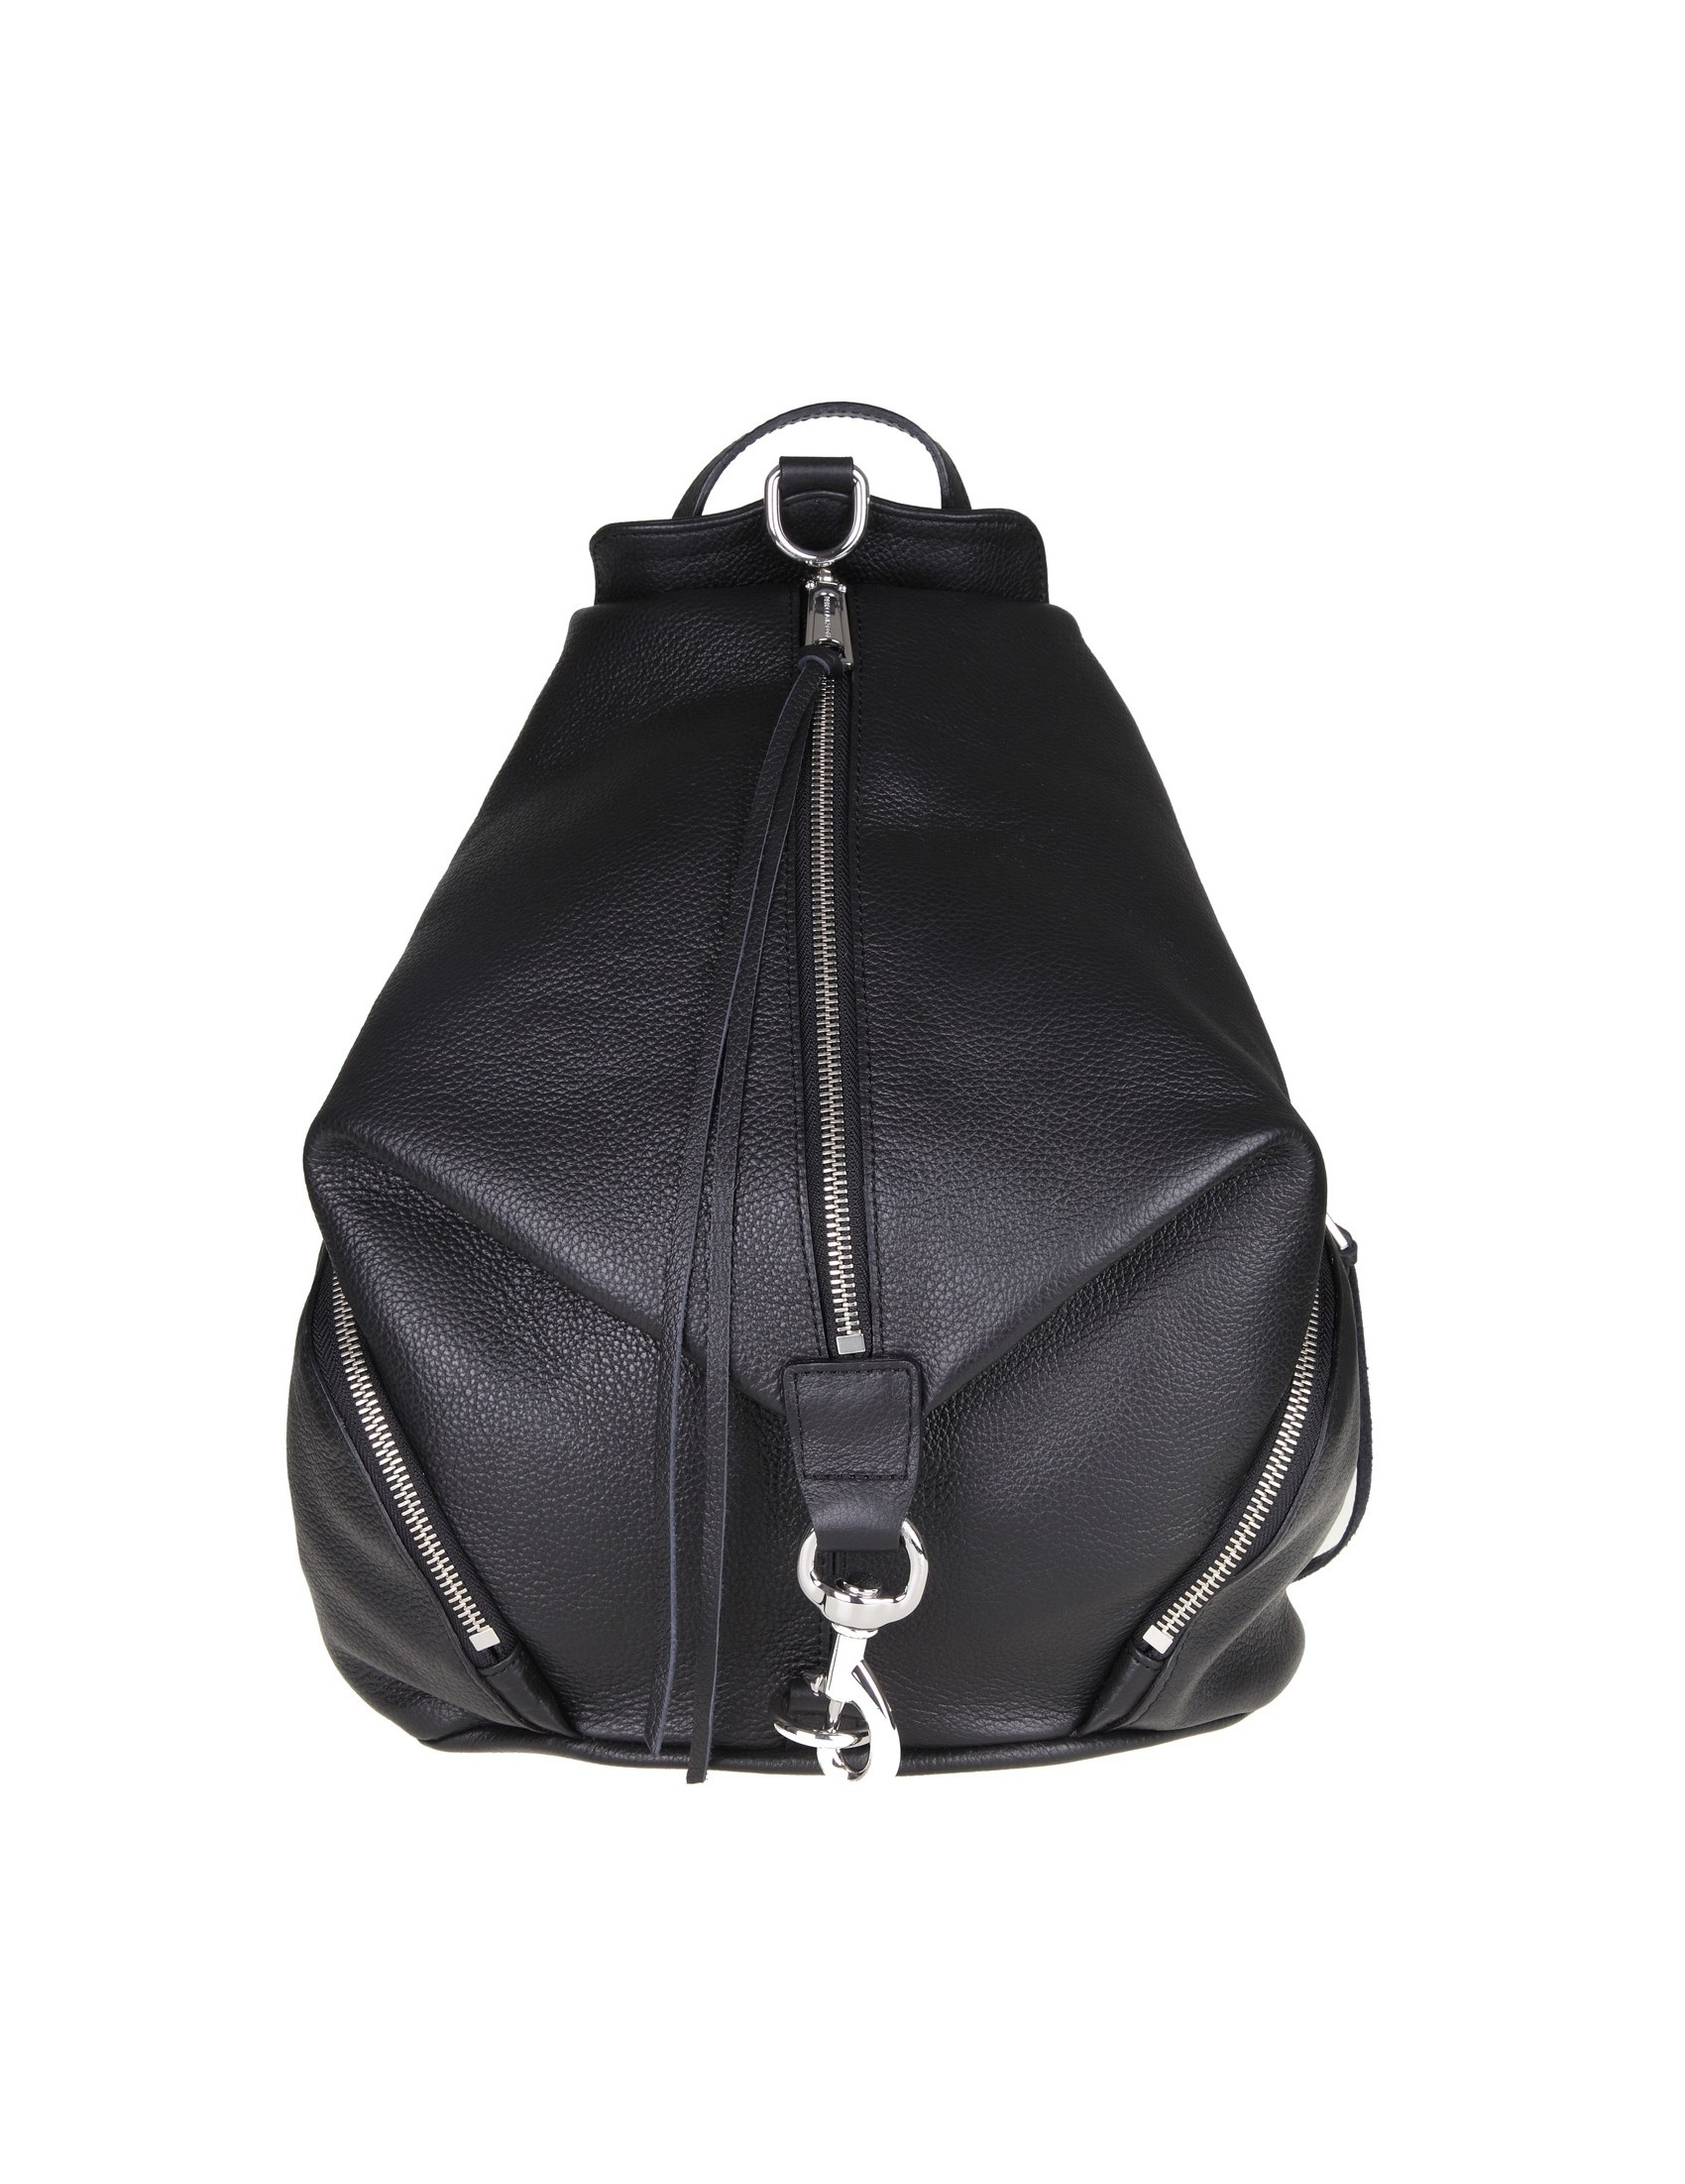 293ad11744925 REBECCA MINKOFF JULIAN BACKPACK IN BLACK LEATHER NEW WOMAN COLLECTION